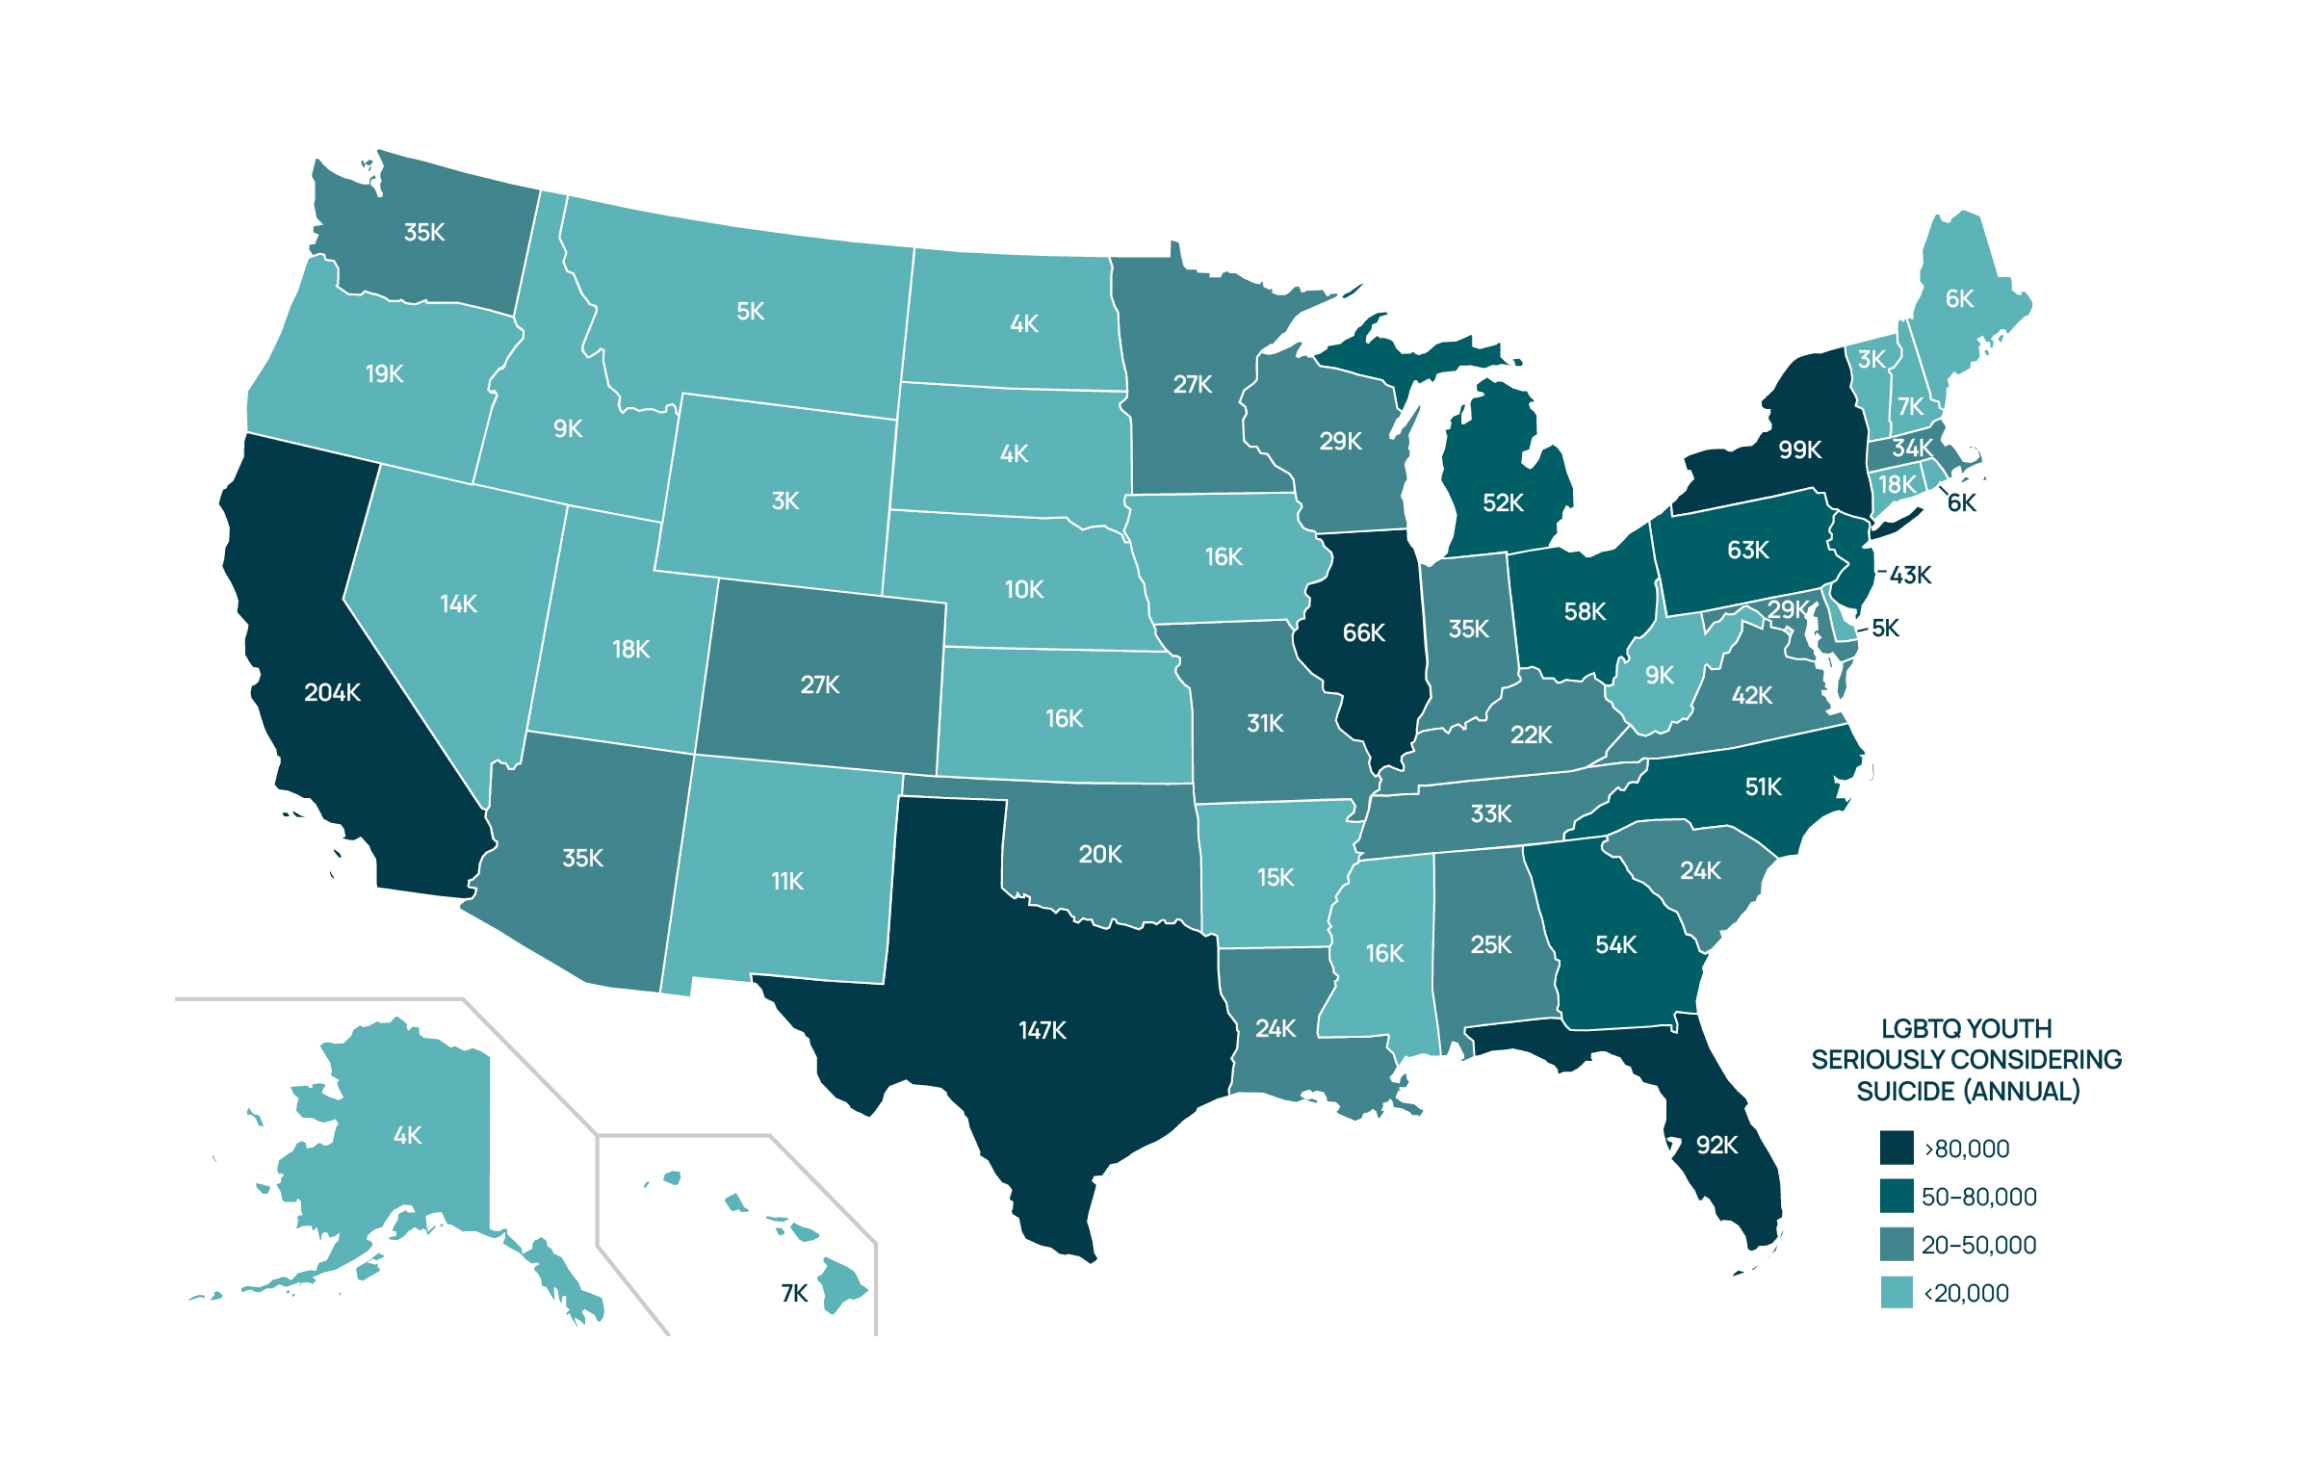 LGBTQ youth suicide map